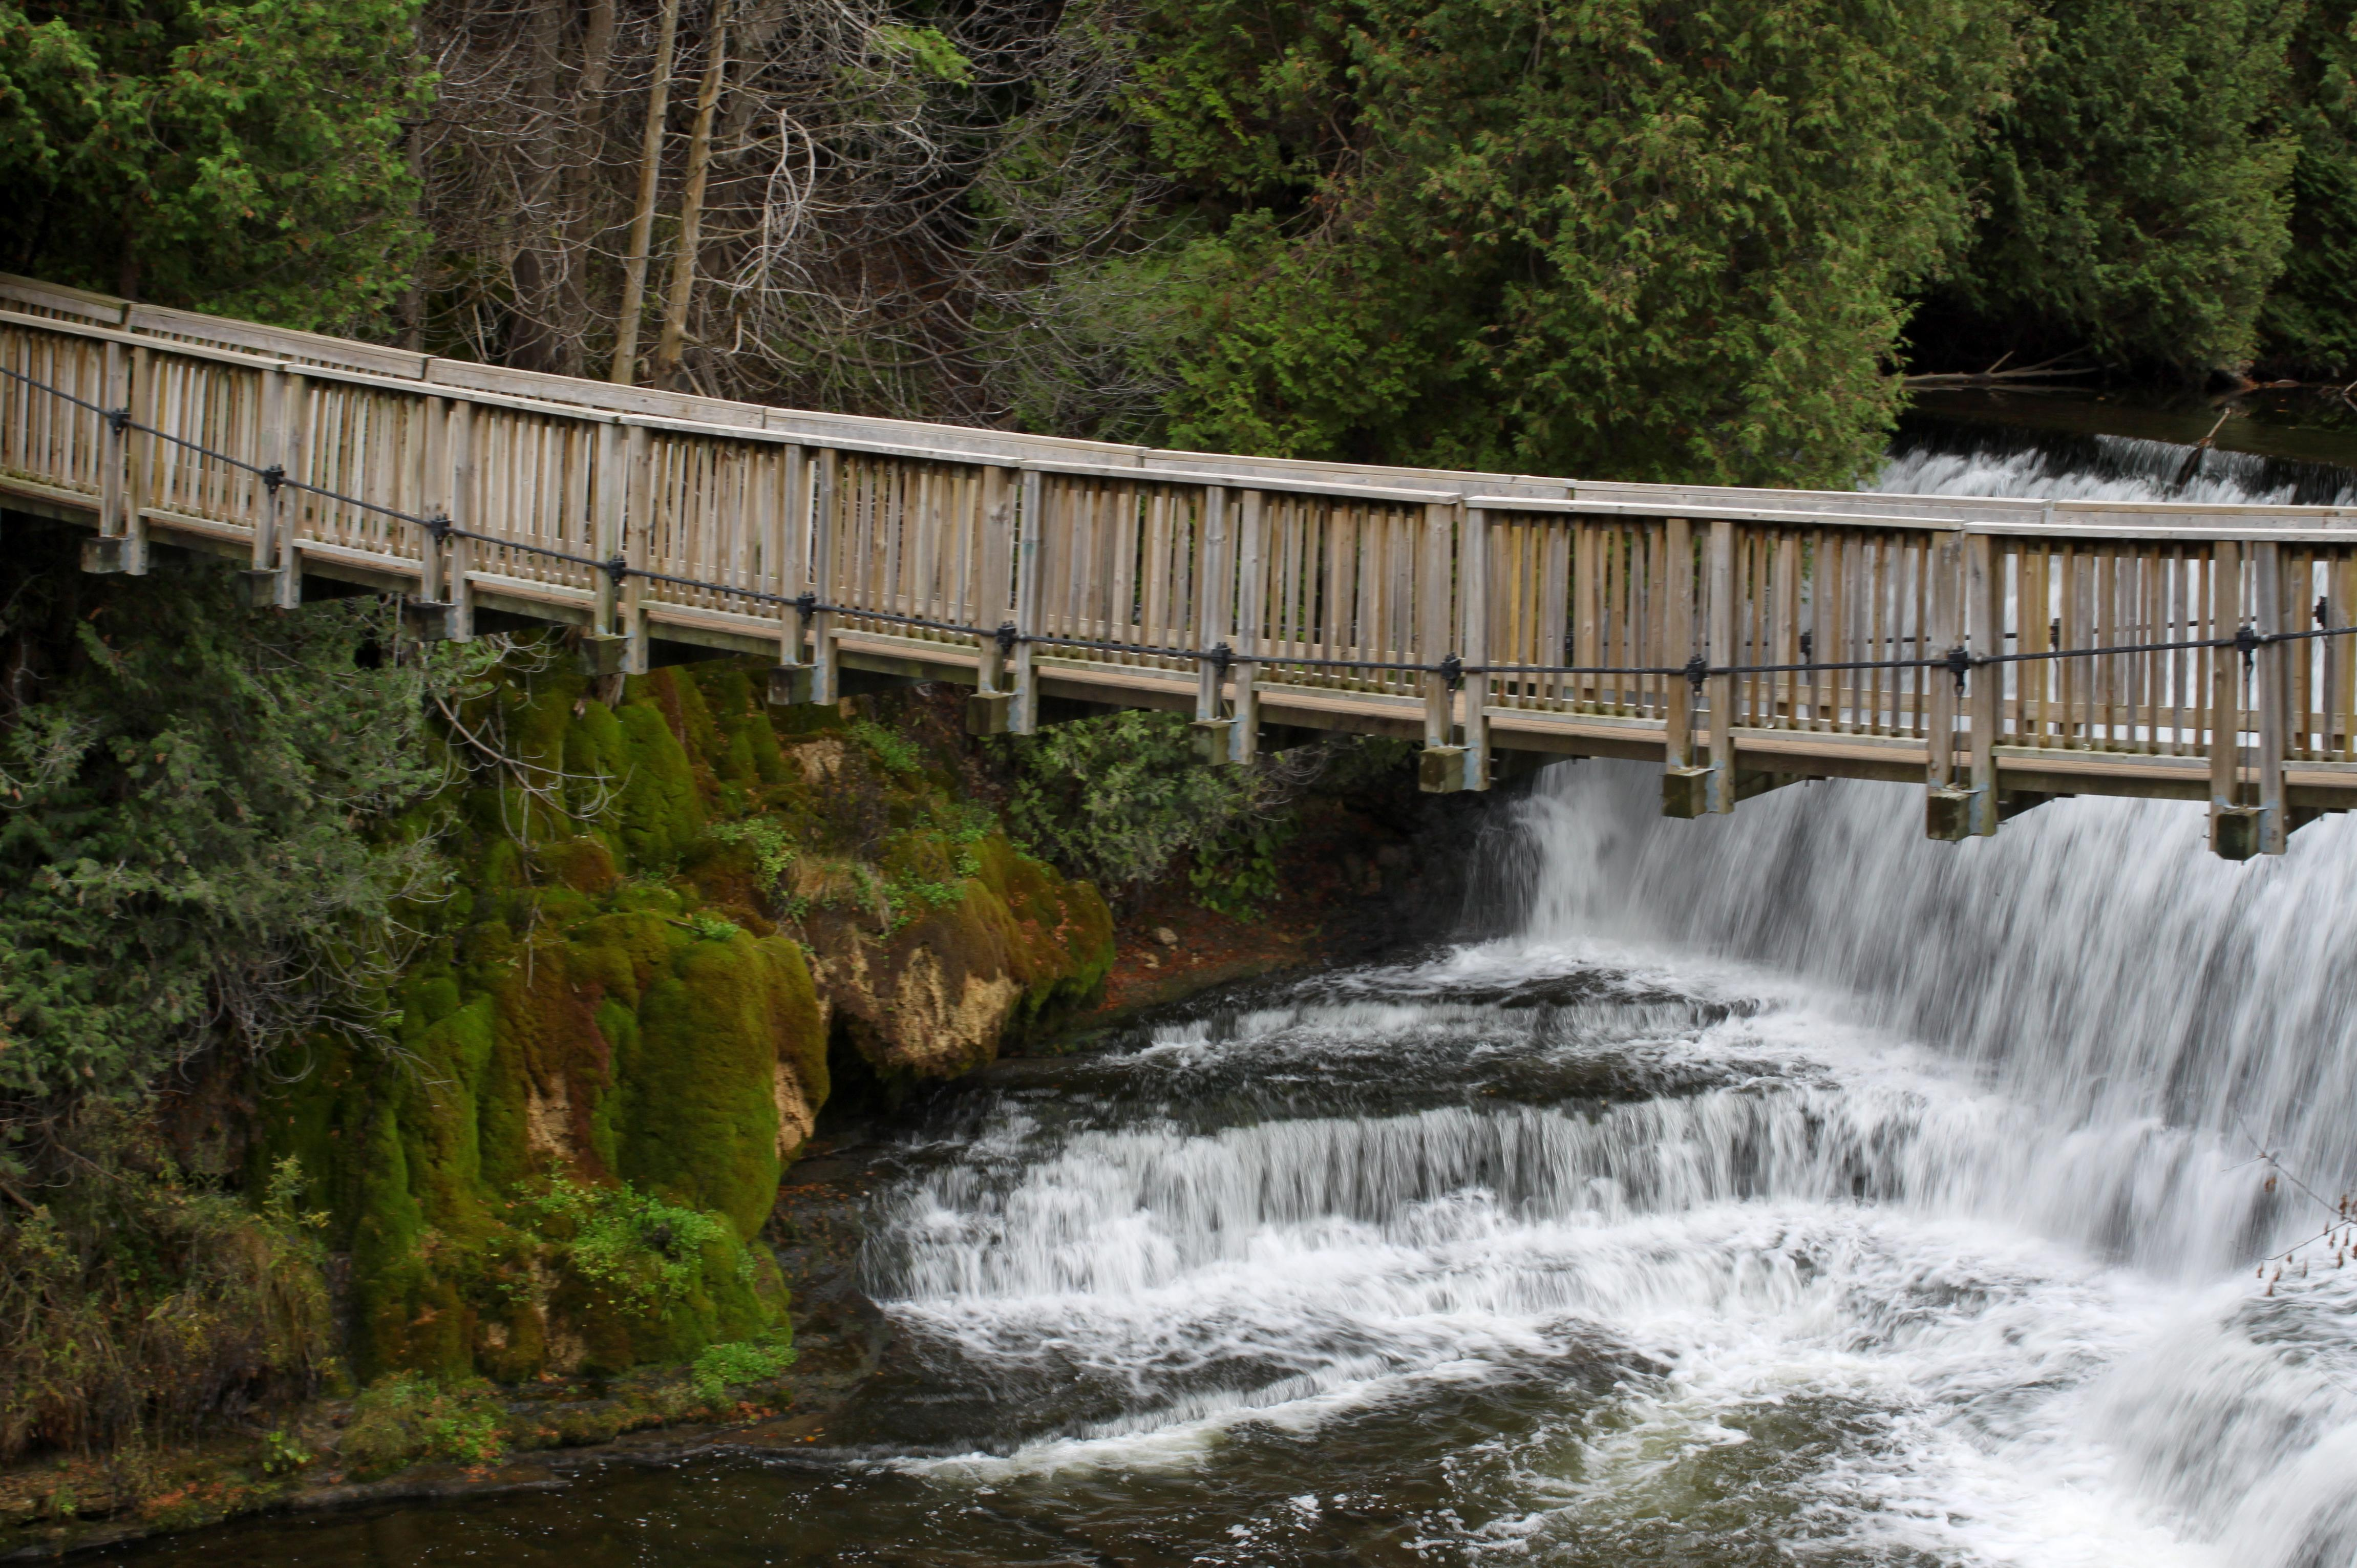 A wooden swing bridge crosses a picturesque river and waterfall